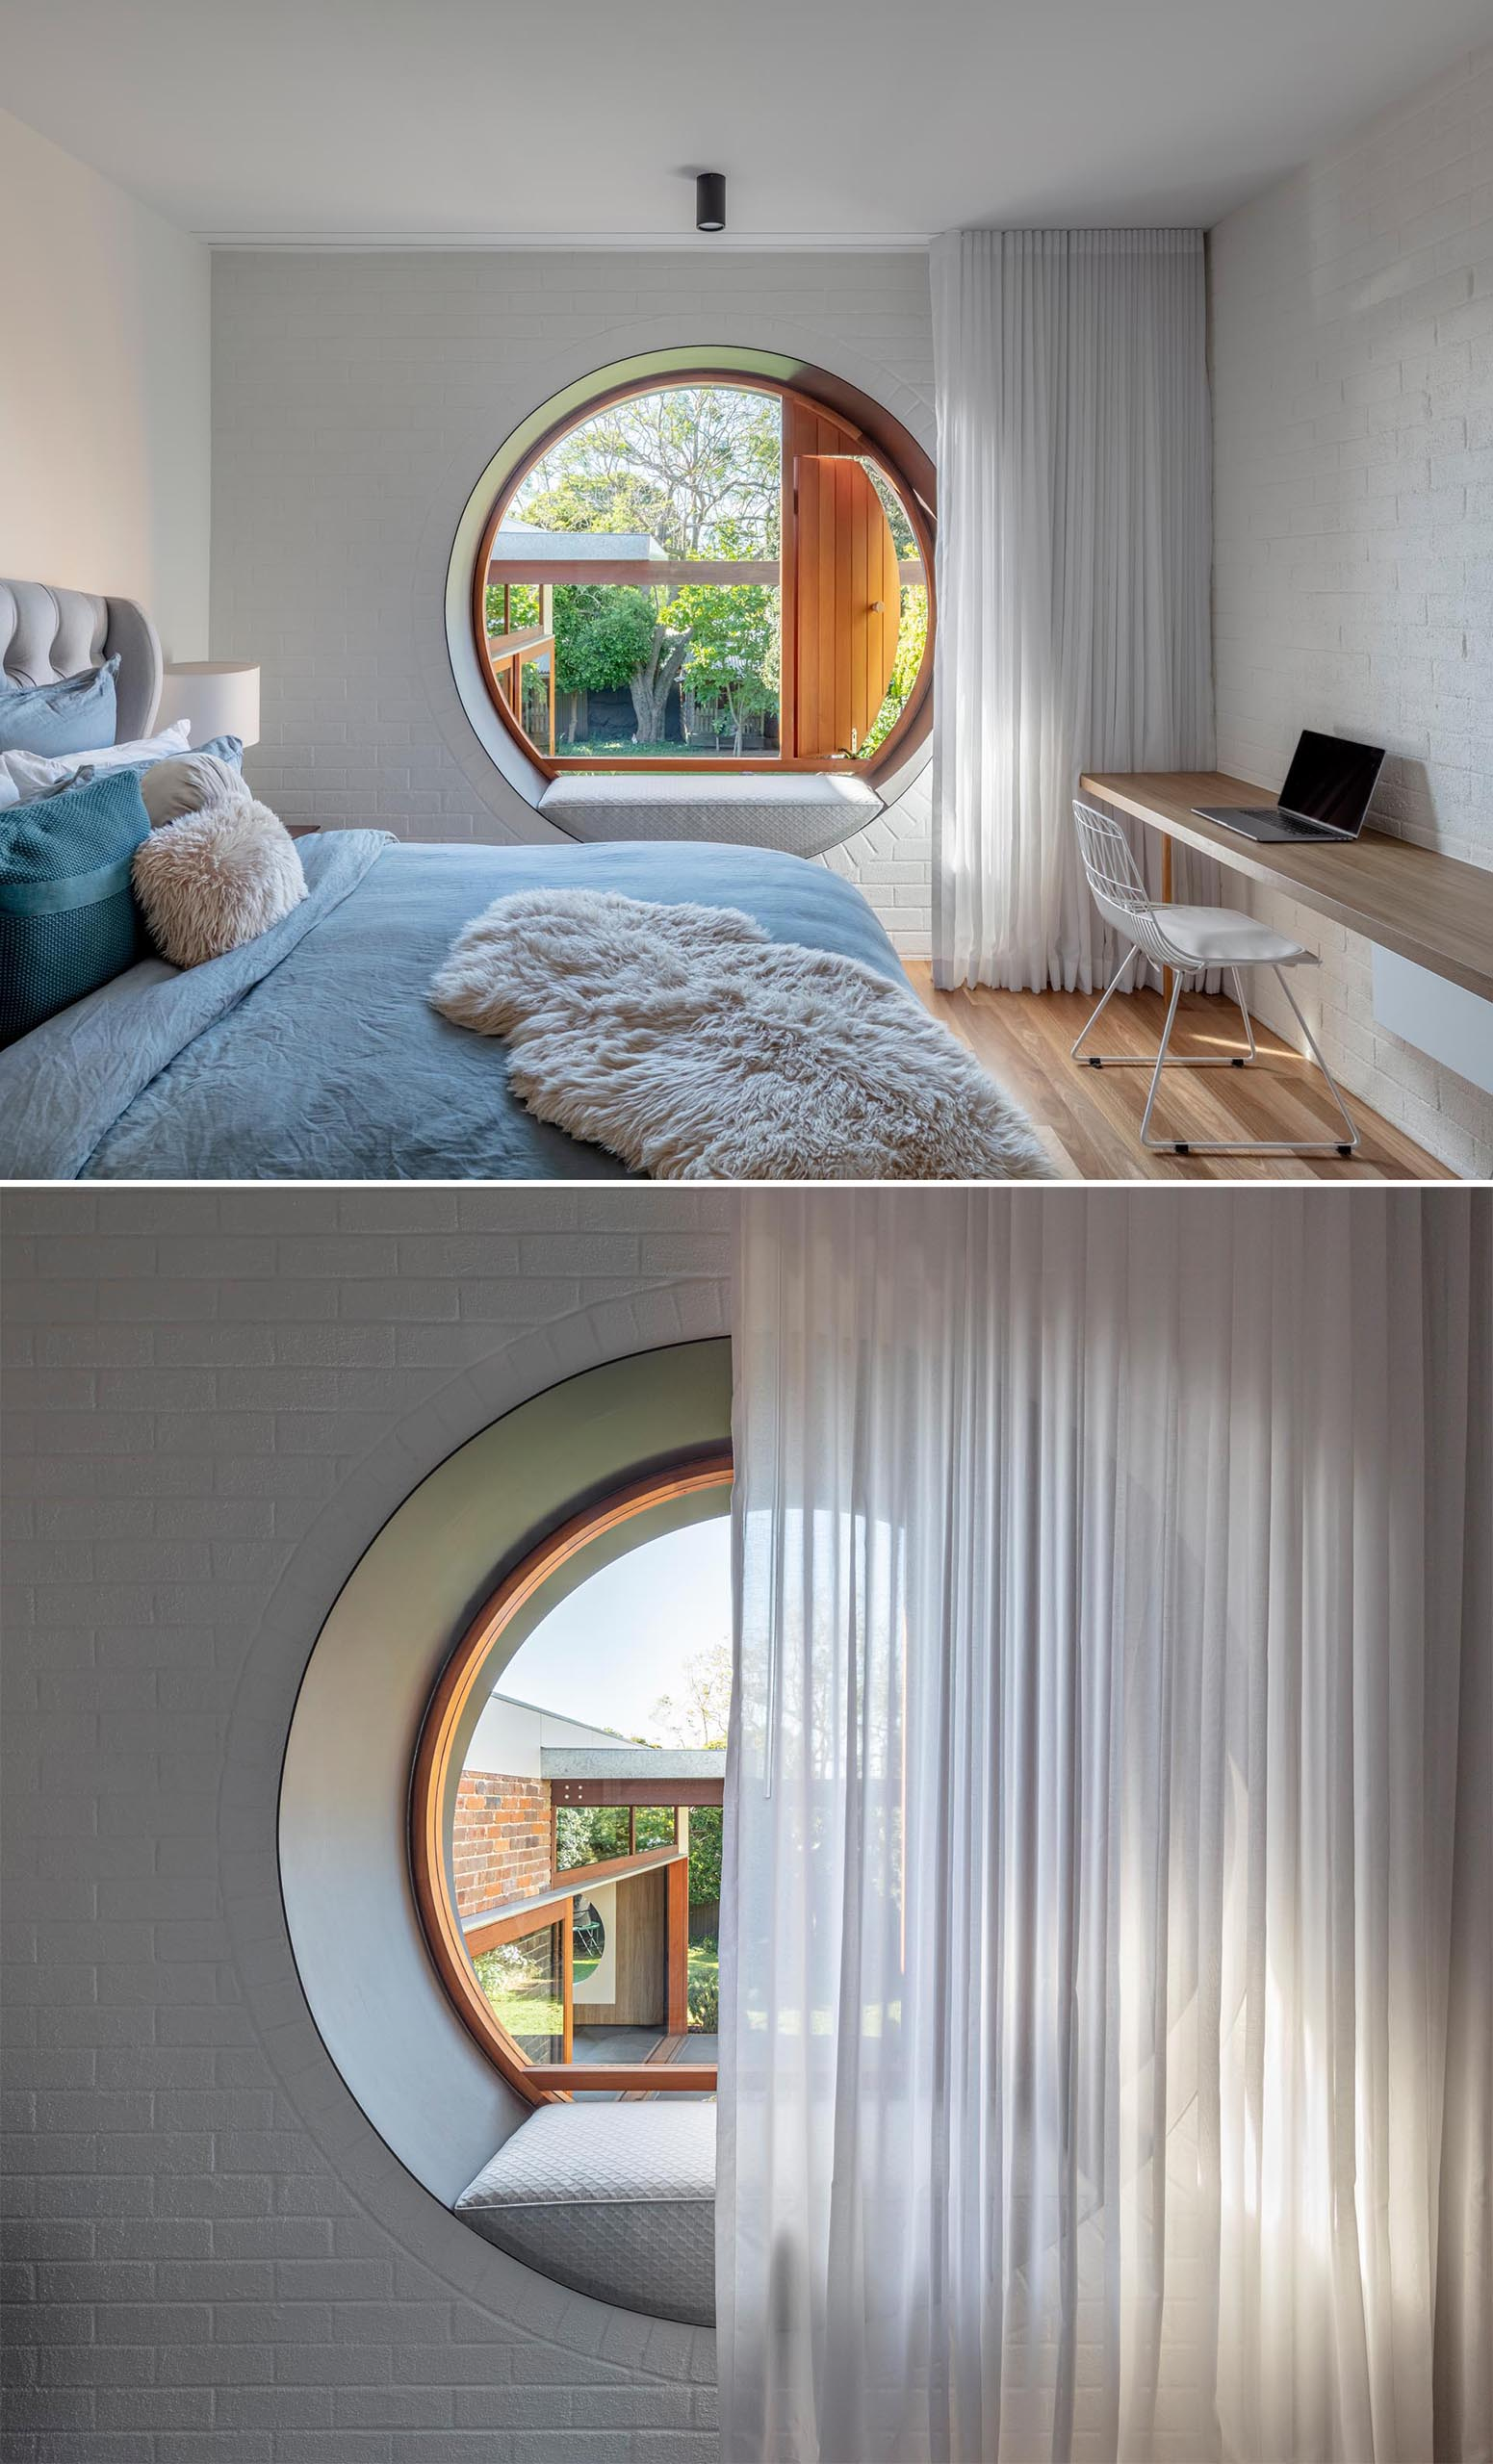 A modern bedroom with a desk and round window with a built-in bench.